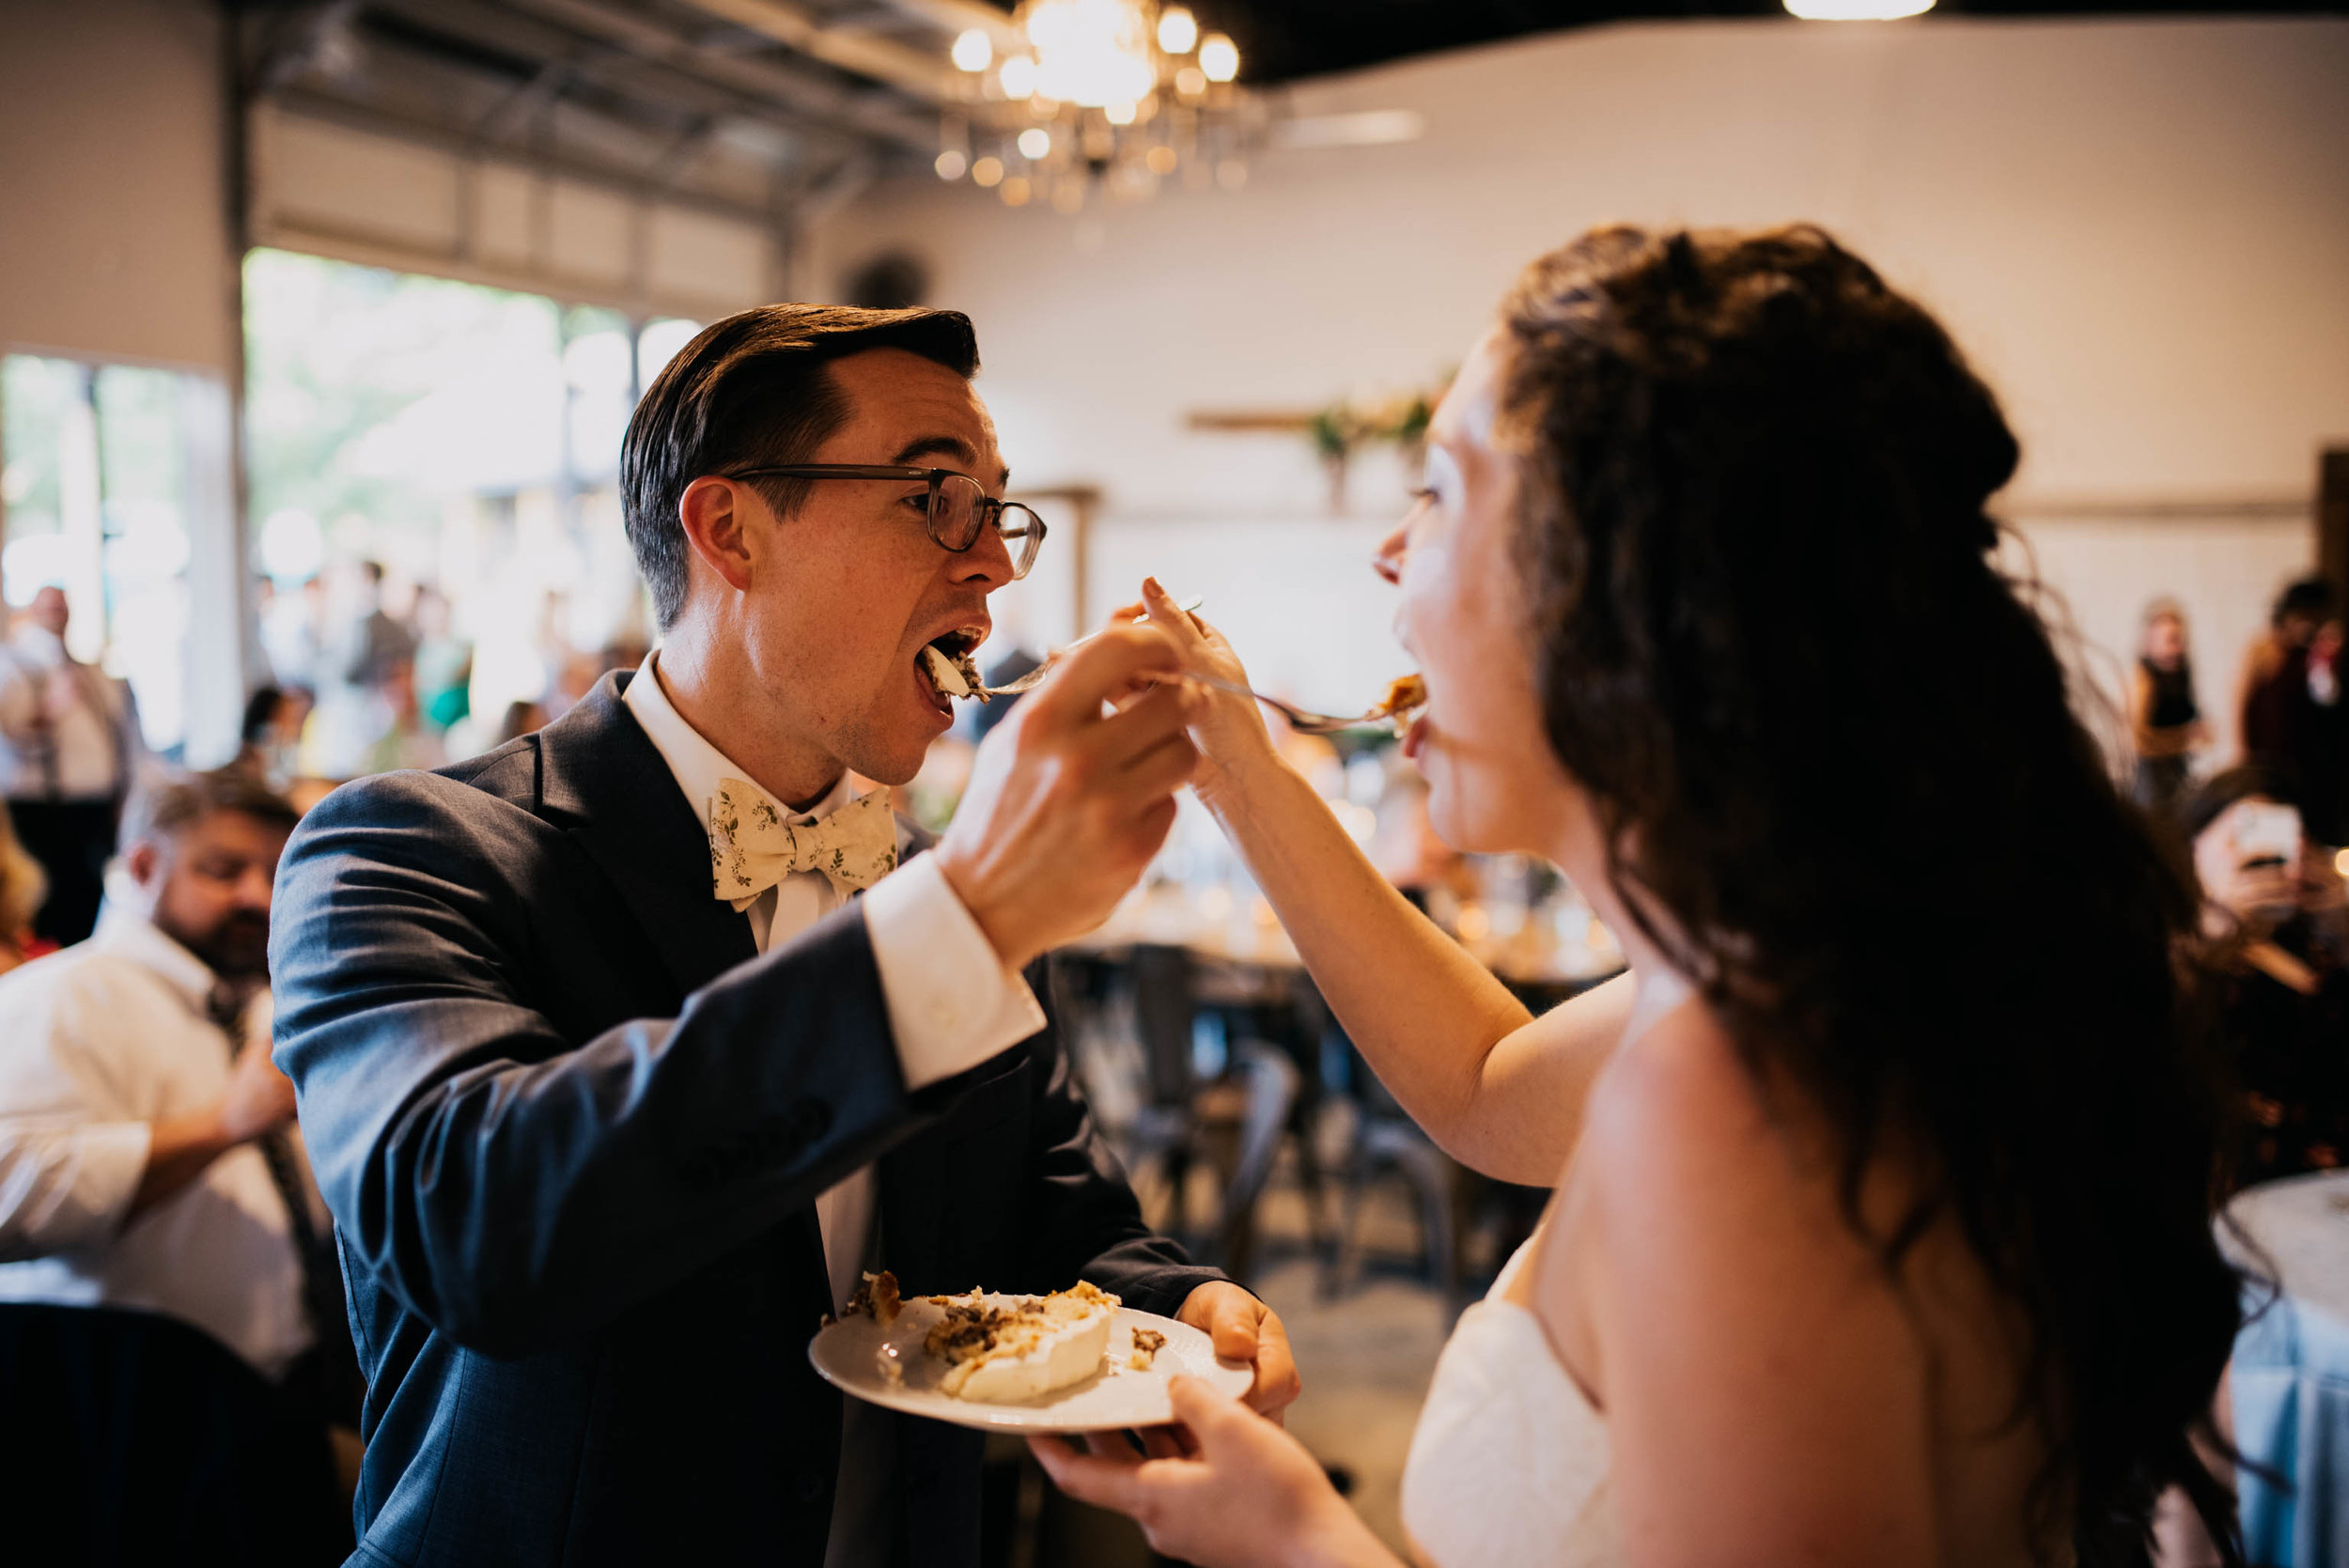 bride and groom feed each other wedding cake during their wedding ceremony